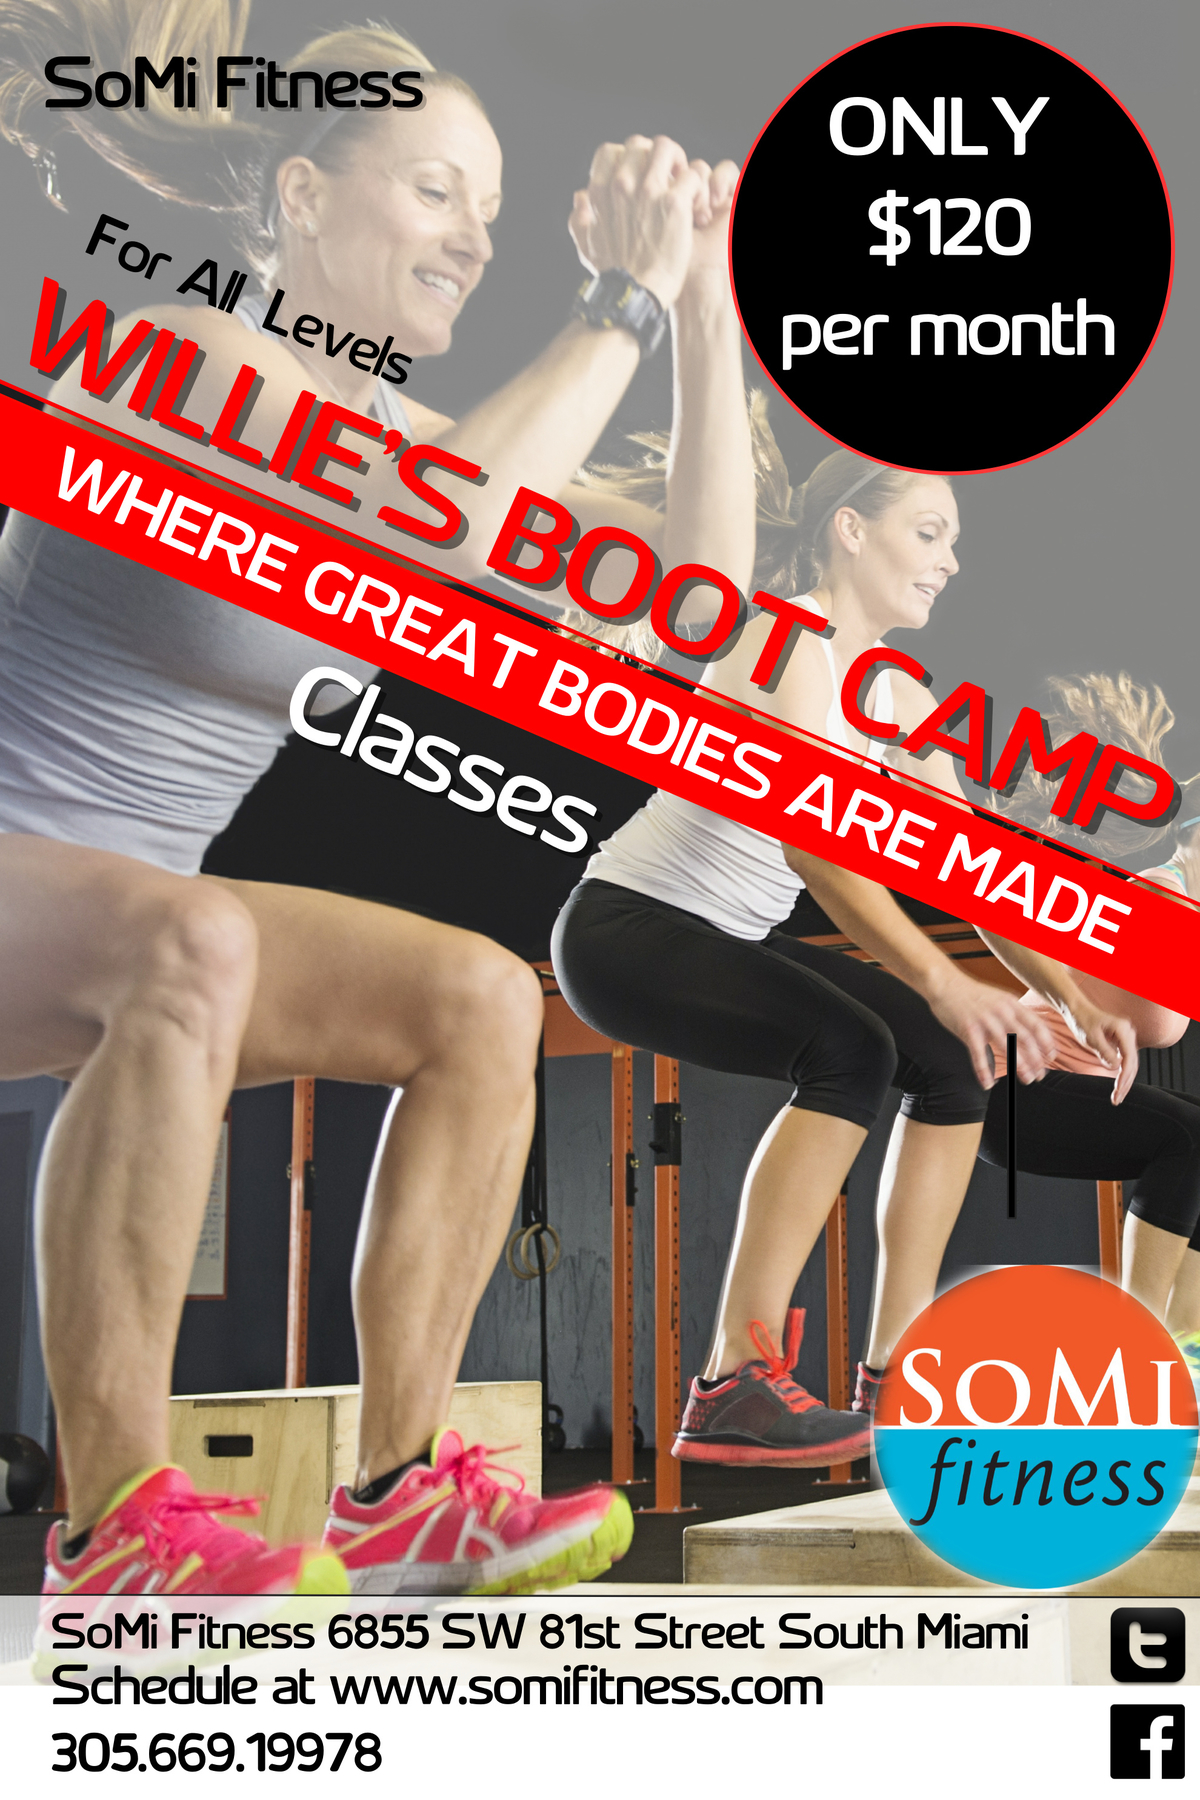 Willie's Boot Camp